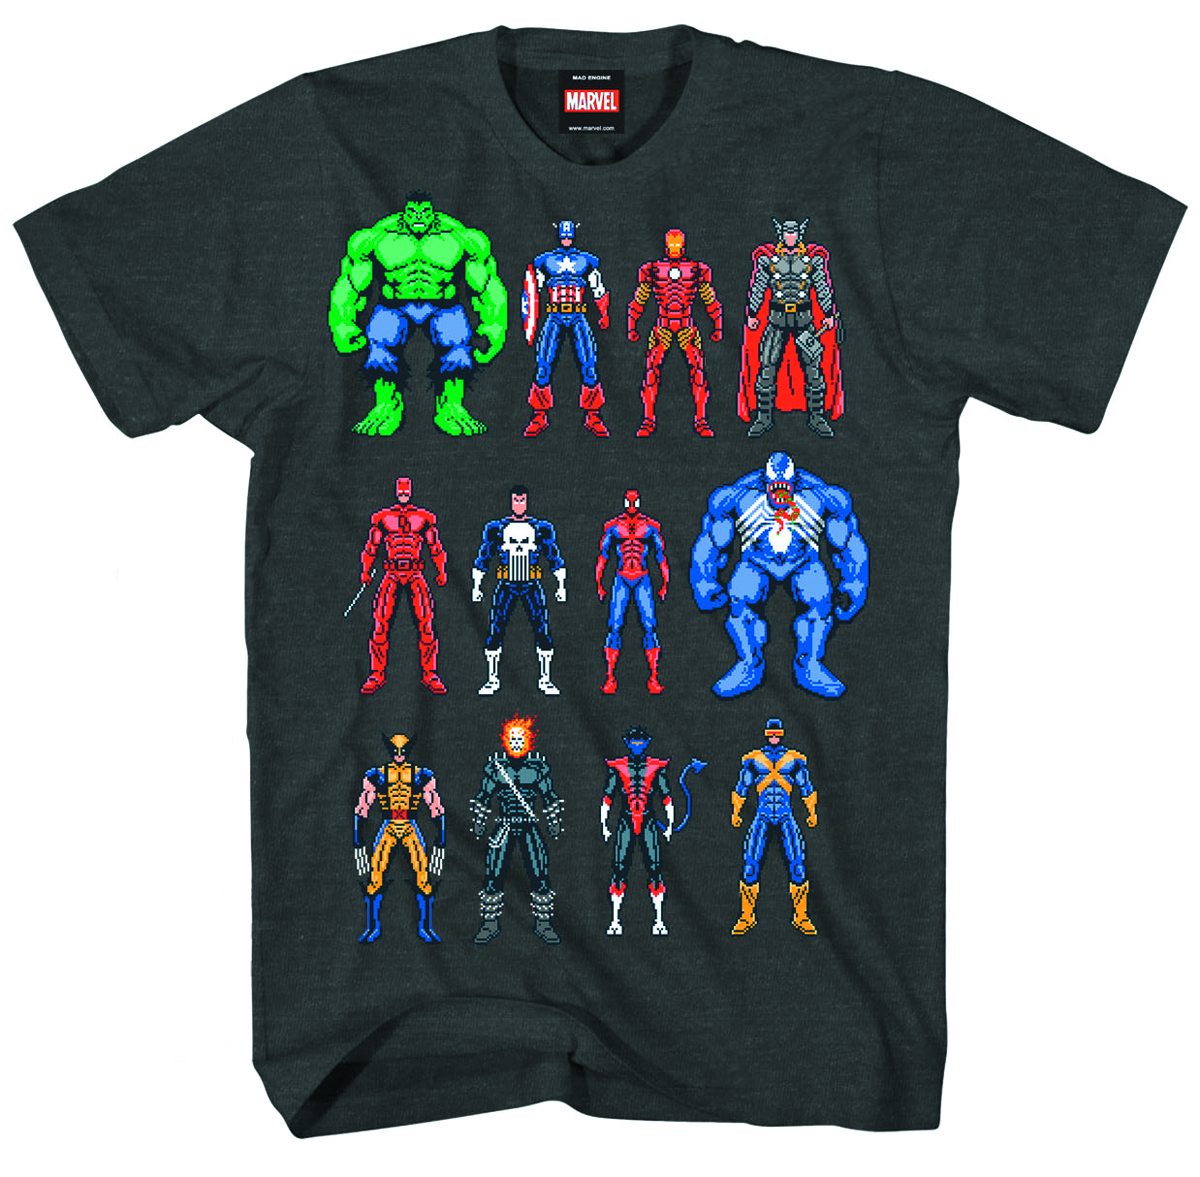 MARVEL HEROES TWELVE UP PX CHAR HTHR T/S XXL